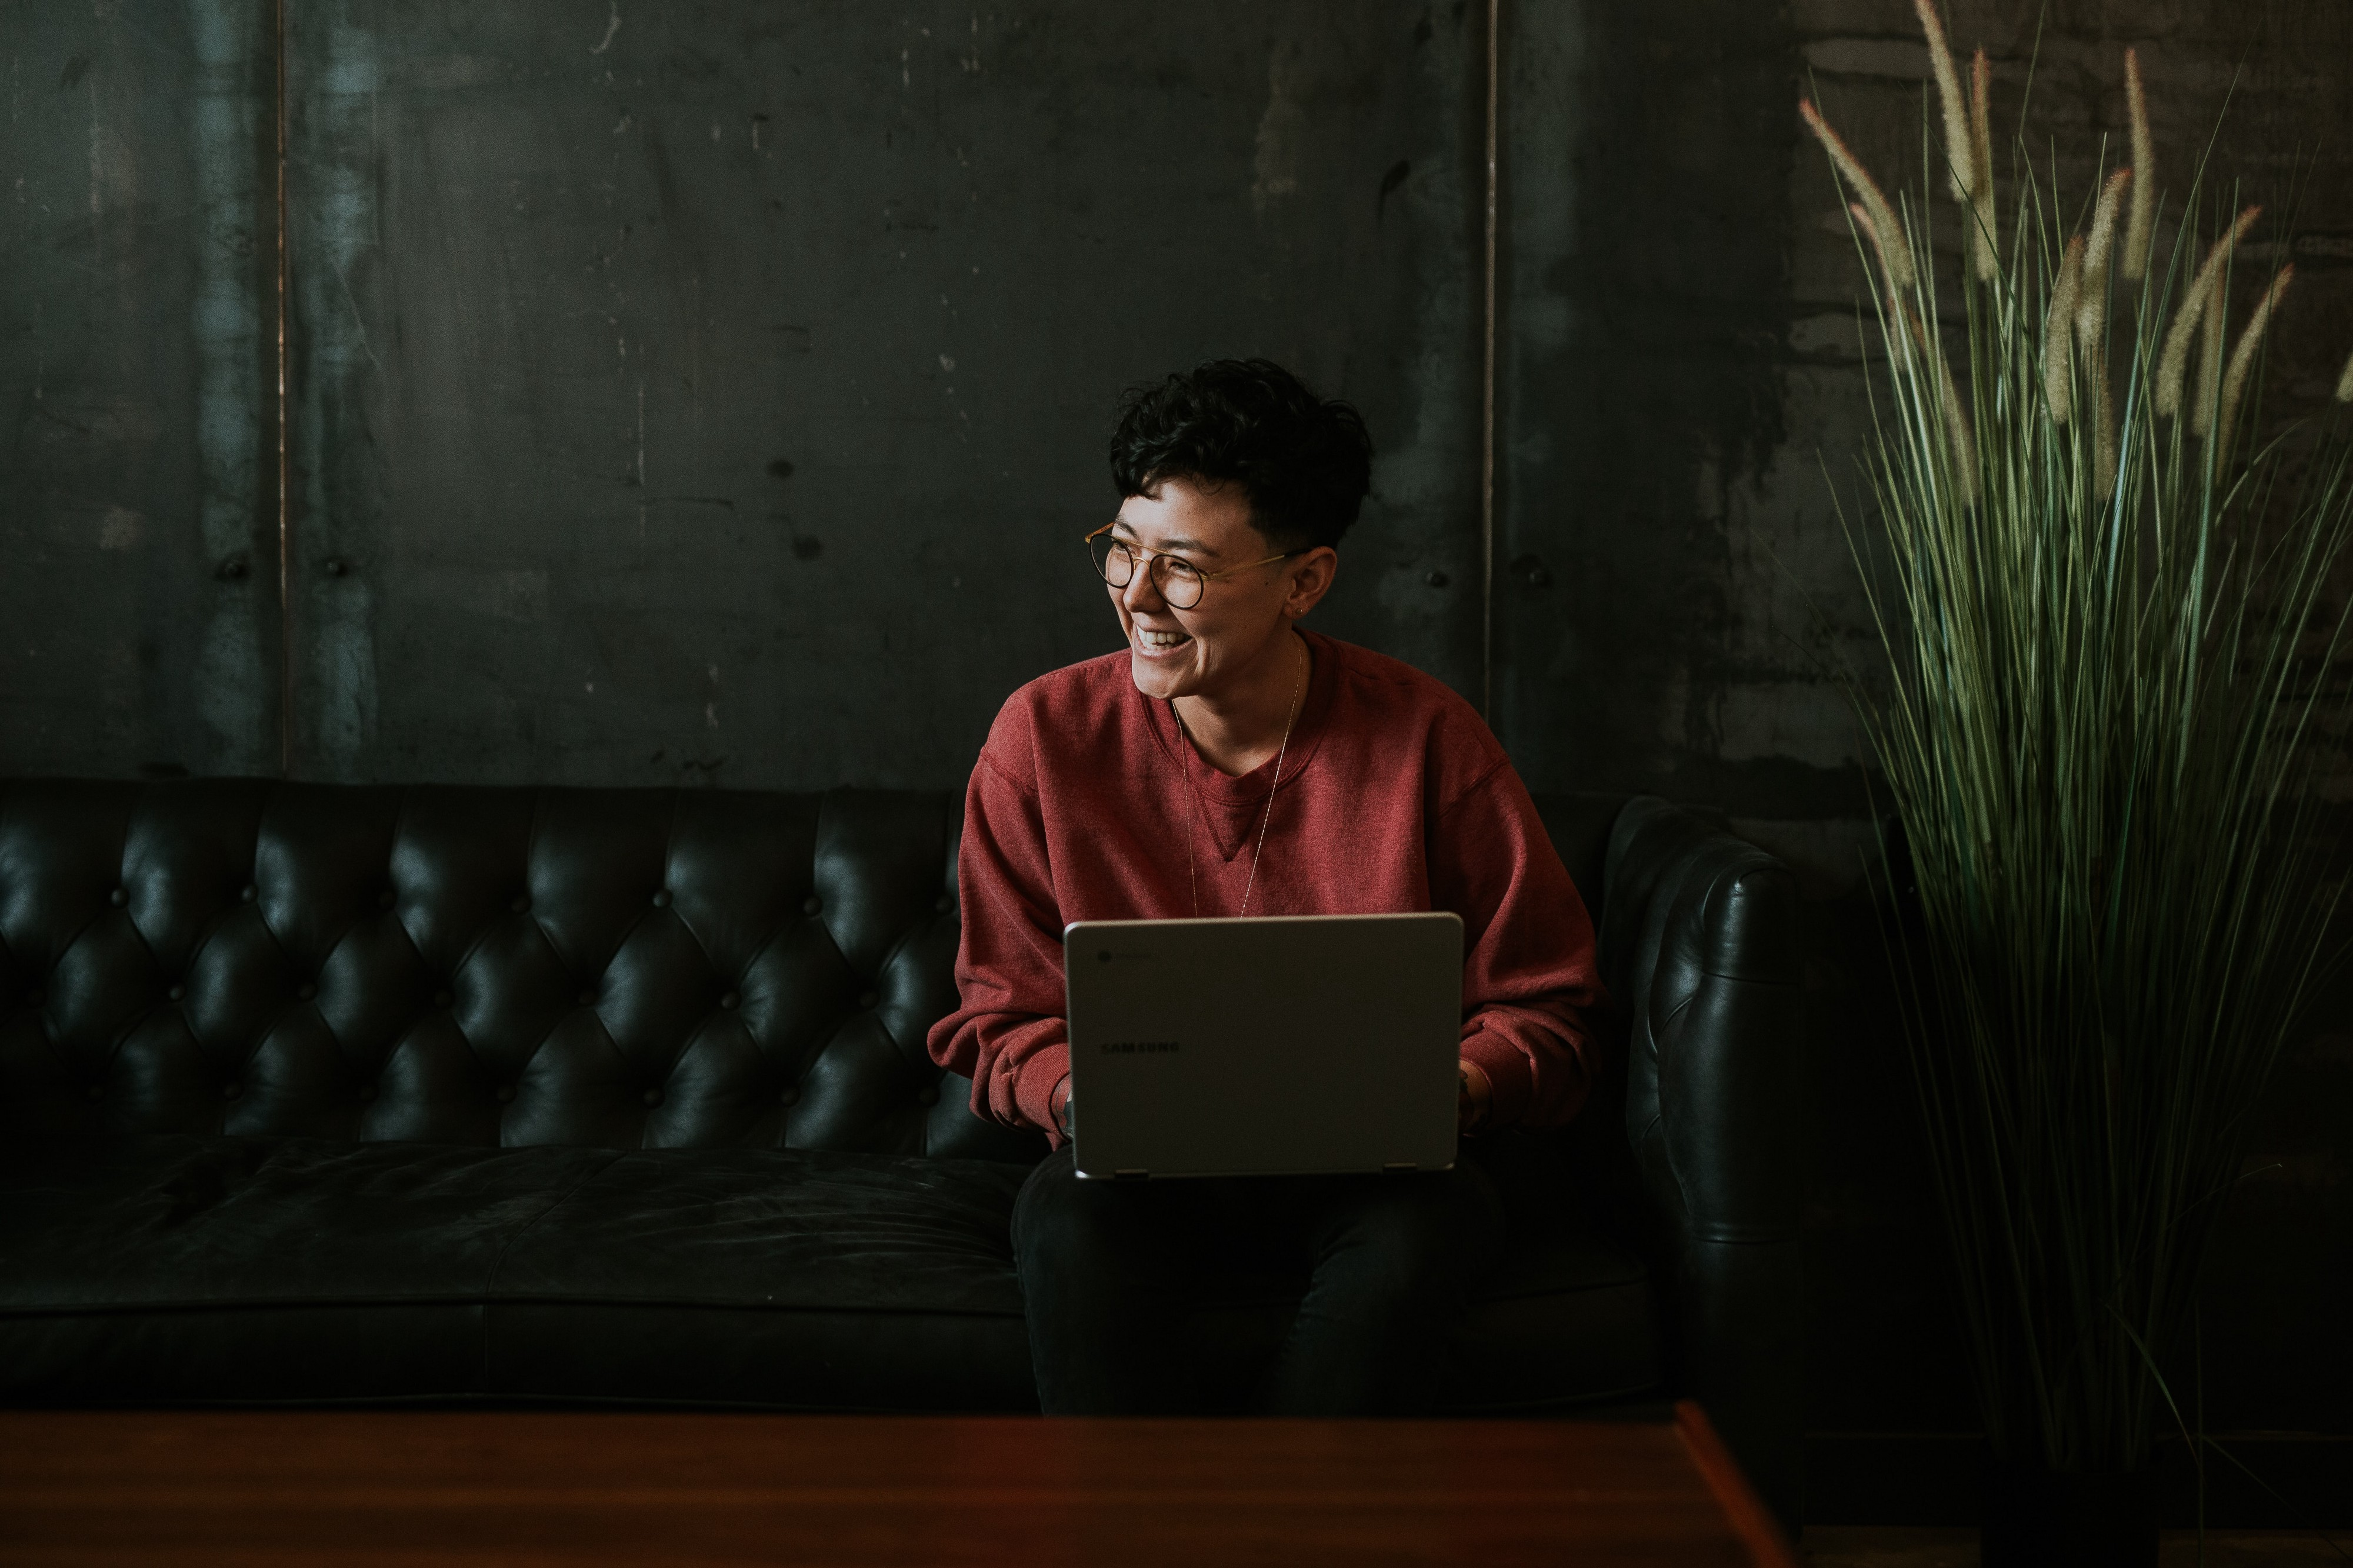 A remote worker smiles on a leather couch. Always assume good intent while communicating remotely.